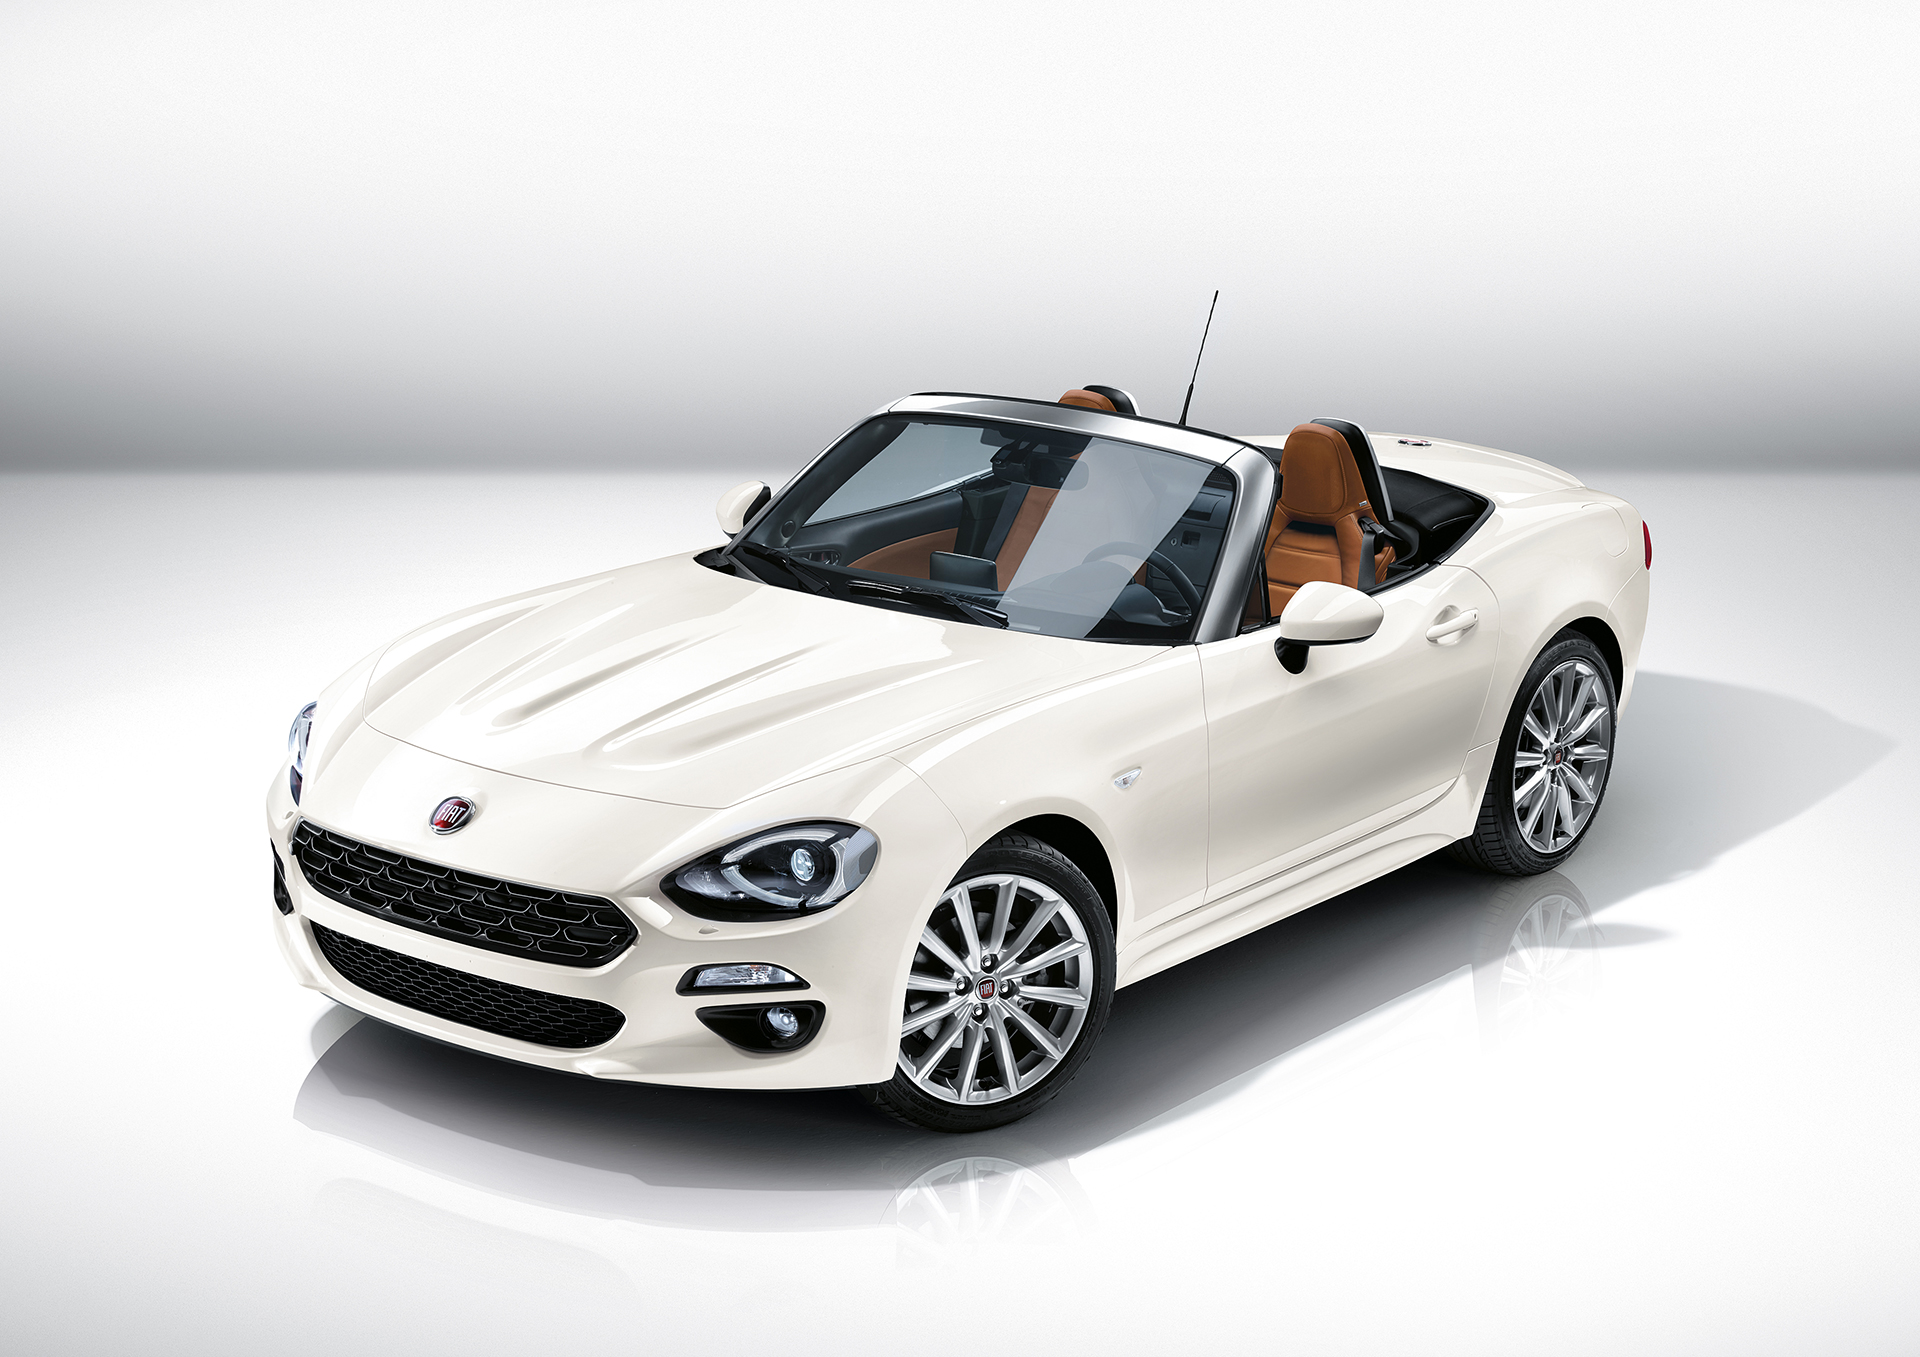 Fiat 124 Spider 2016 - profil avant / front side-face